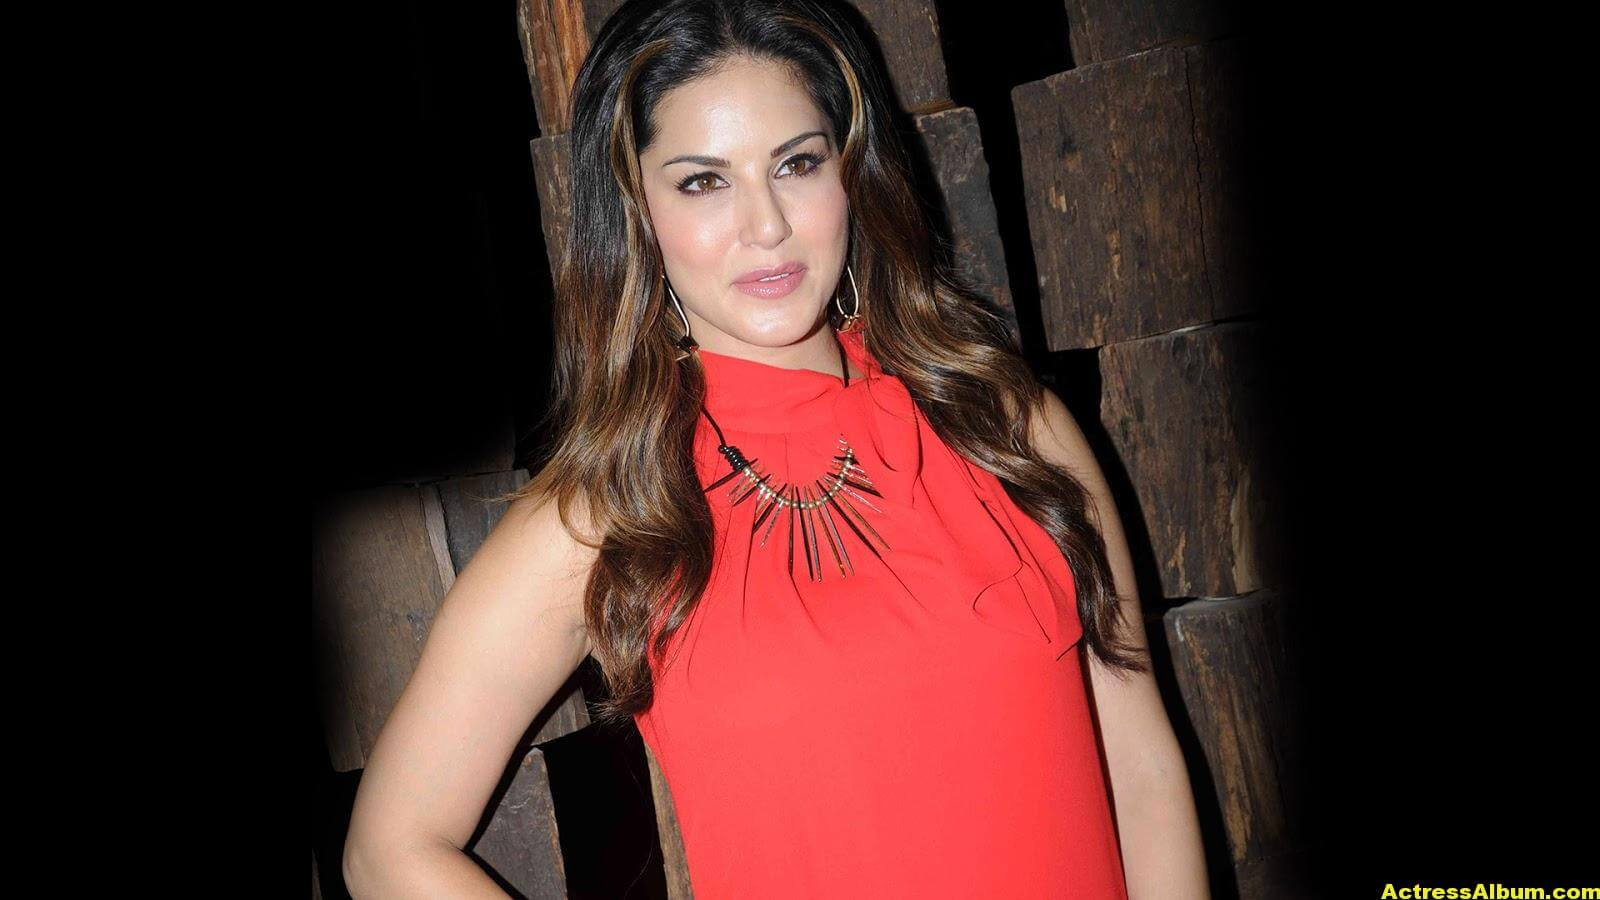 Sunny Leone Hot Cute Photos In Red Dress 2